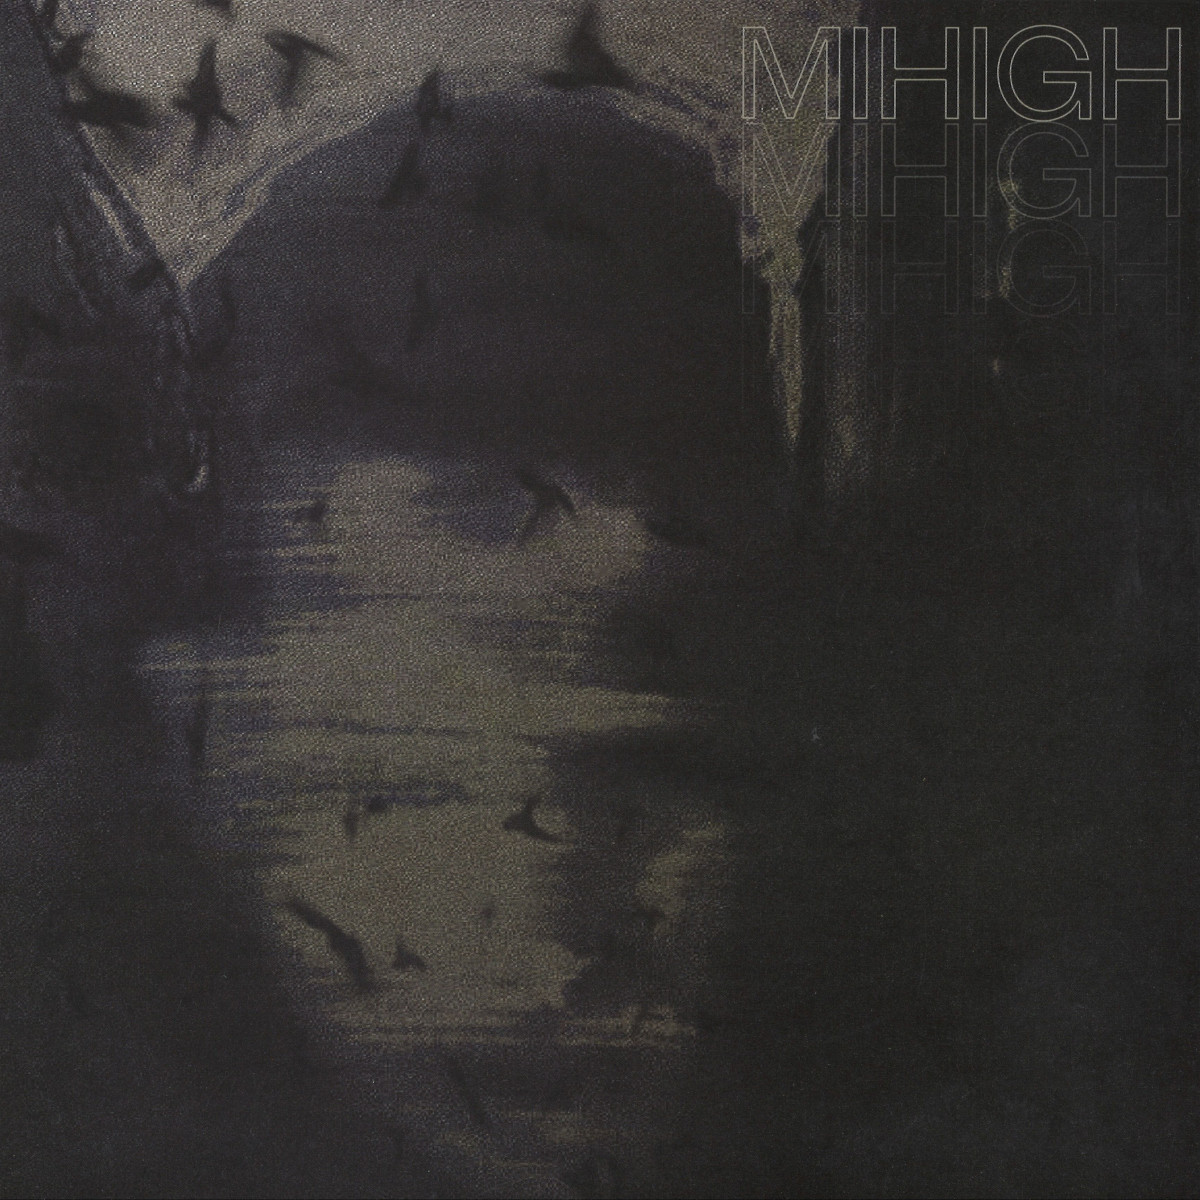 Mihigh - Isolator EP [DUB Musik Limited]